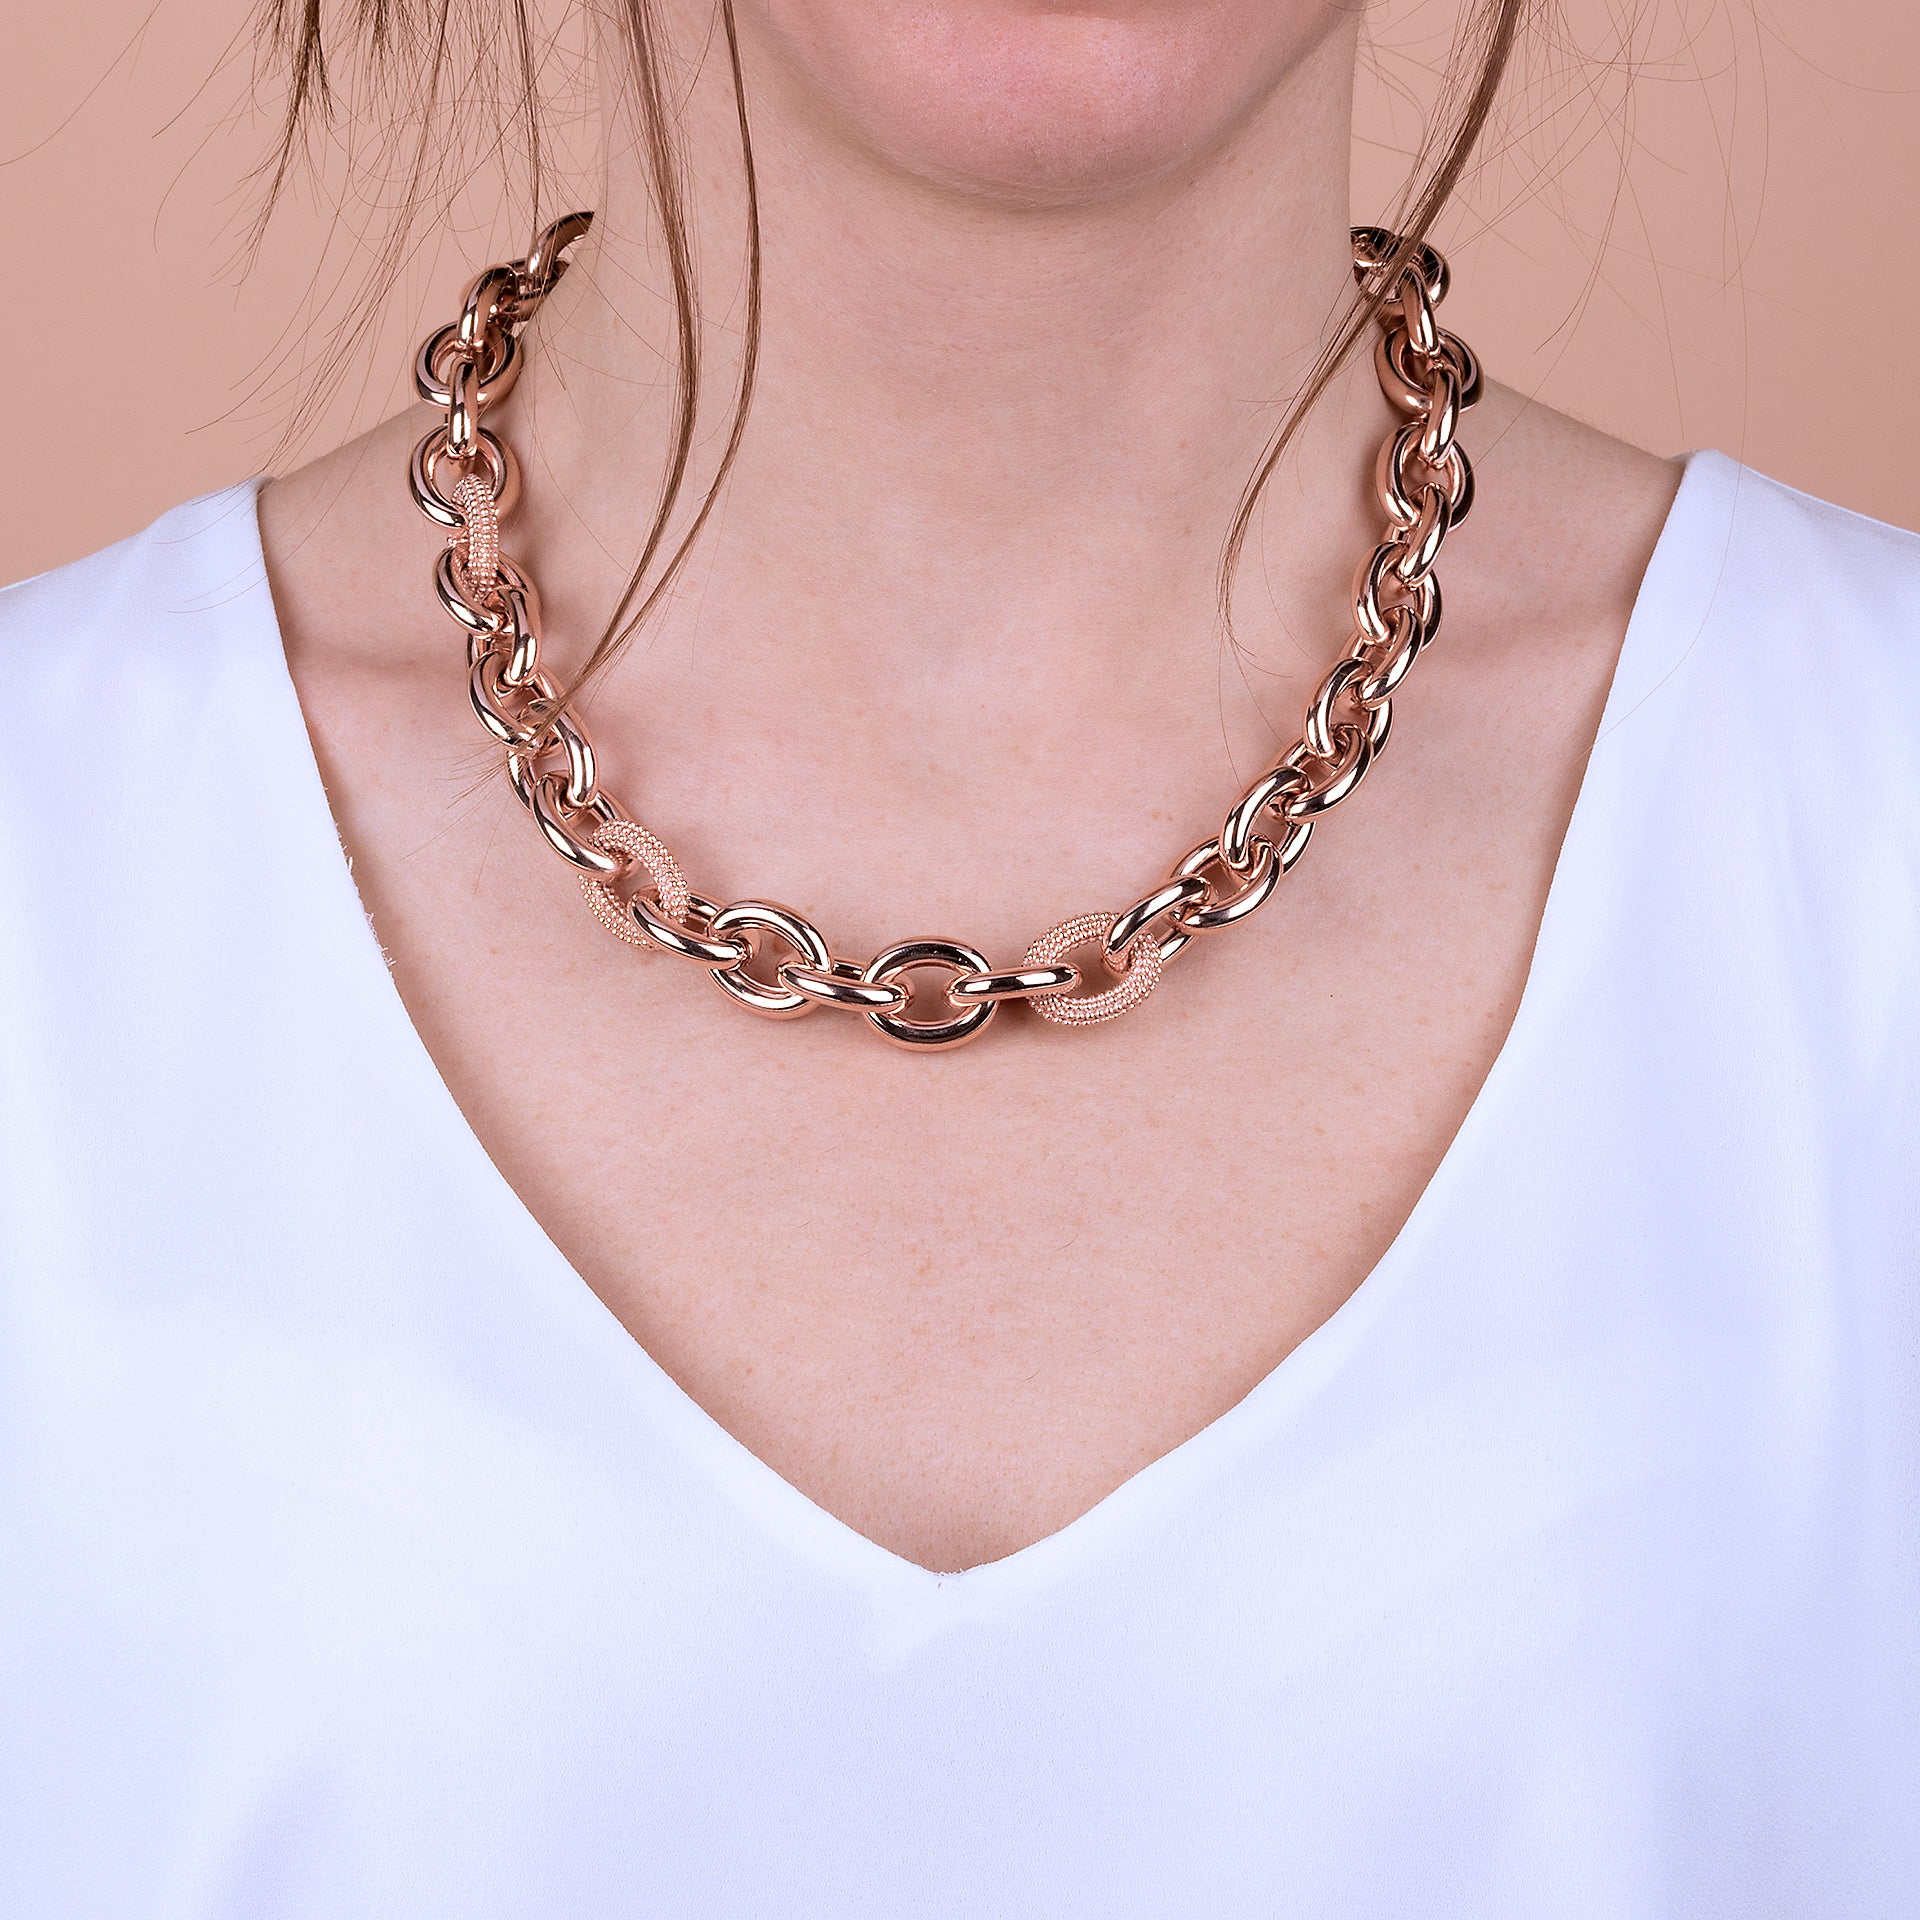 Golden Rosé Textured Anchor Link Chain Necklace